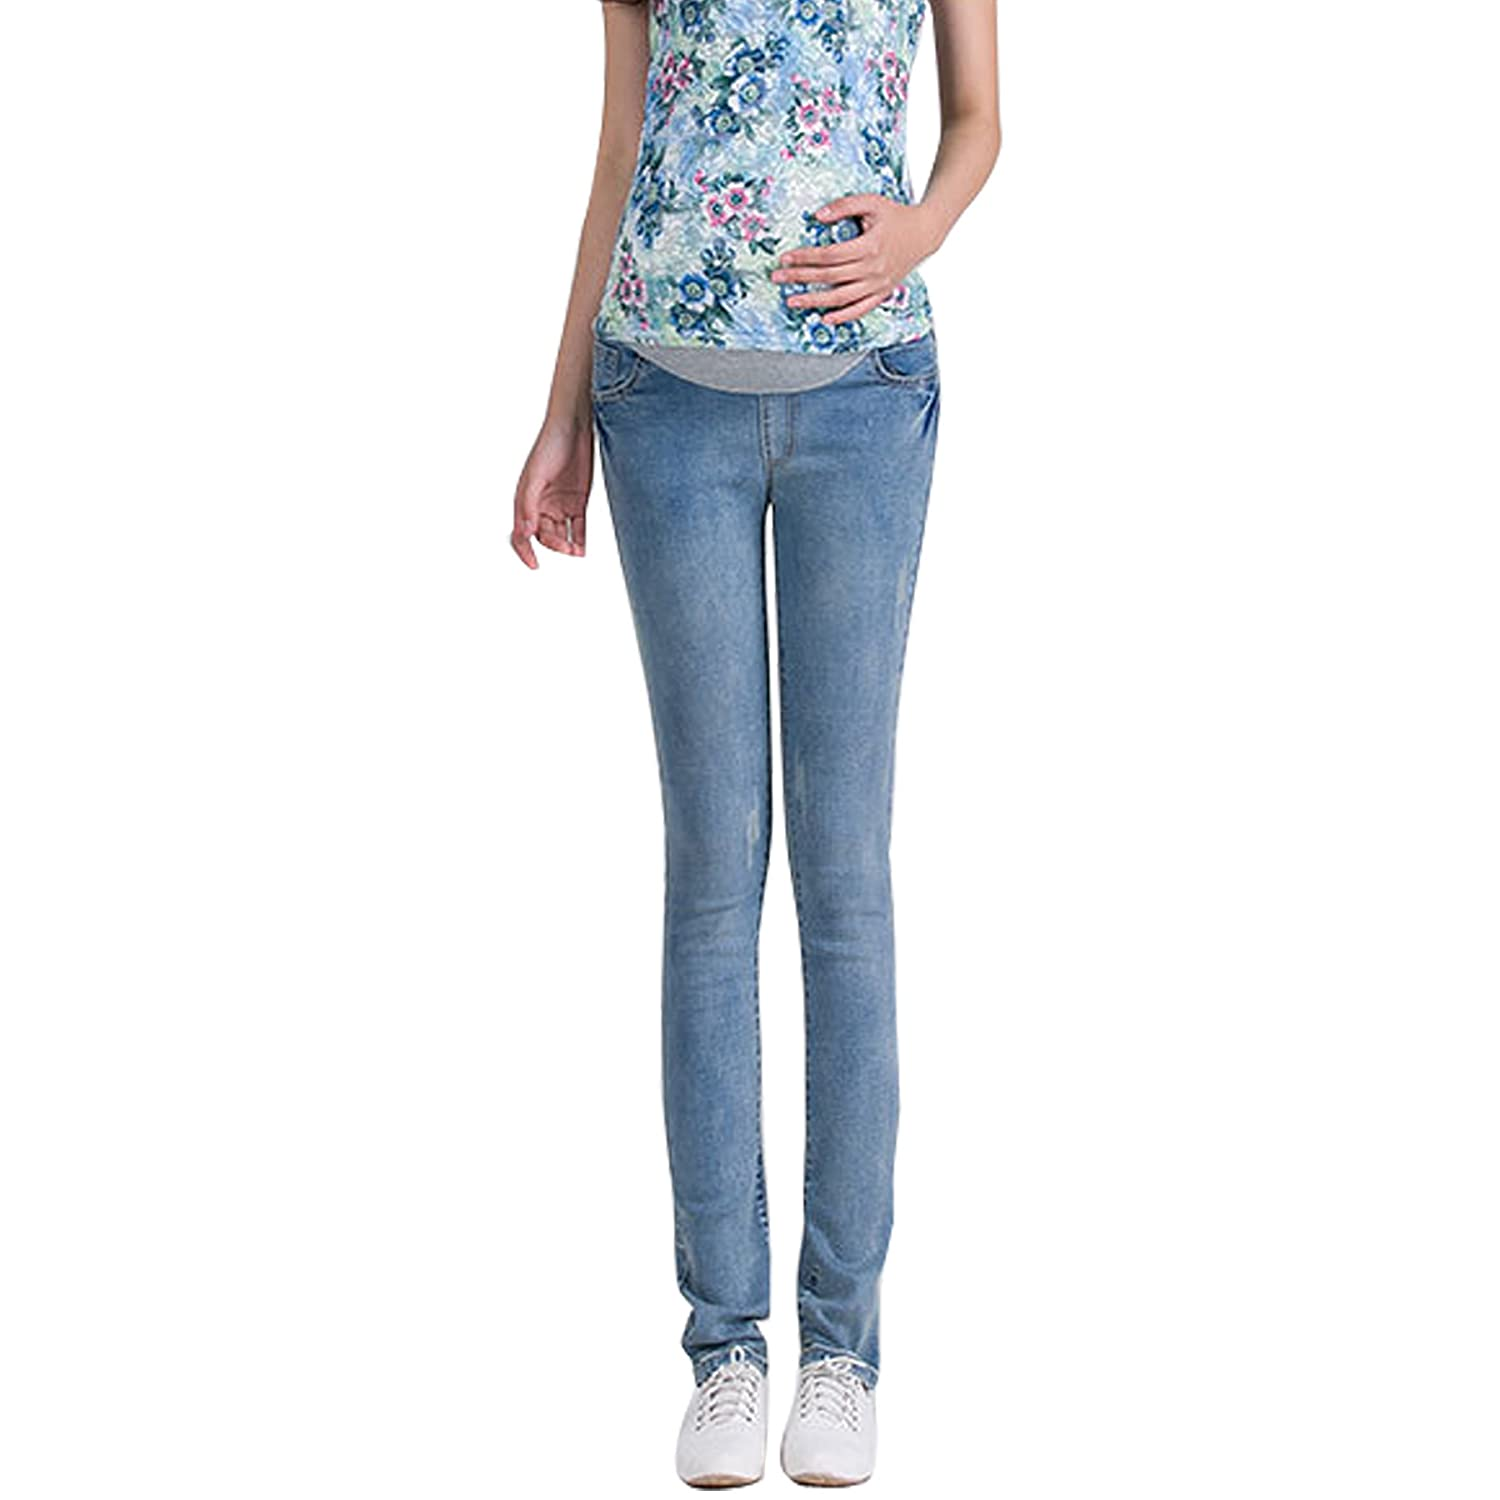 Gaorui Fashion Skinny Maternity Jeans: Over The Bump Slim Denim Pregnancy Pants Leggings